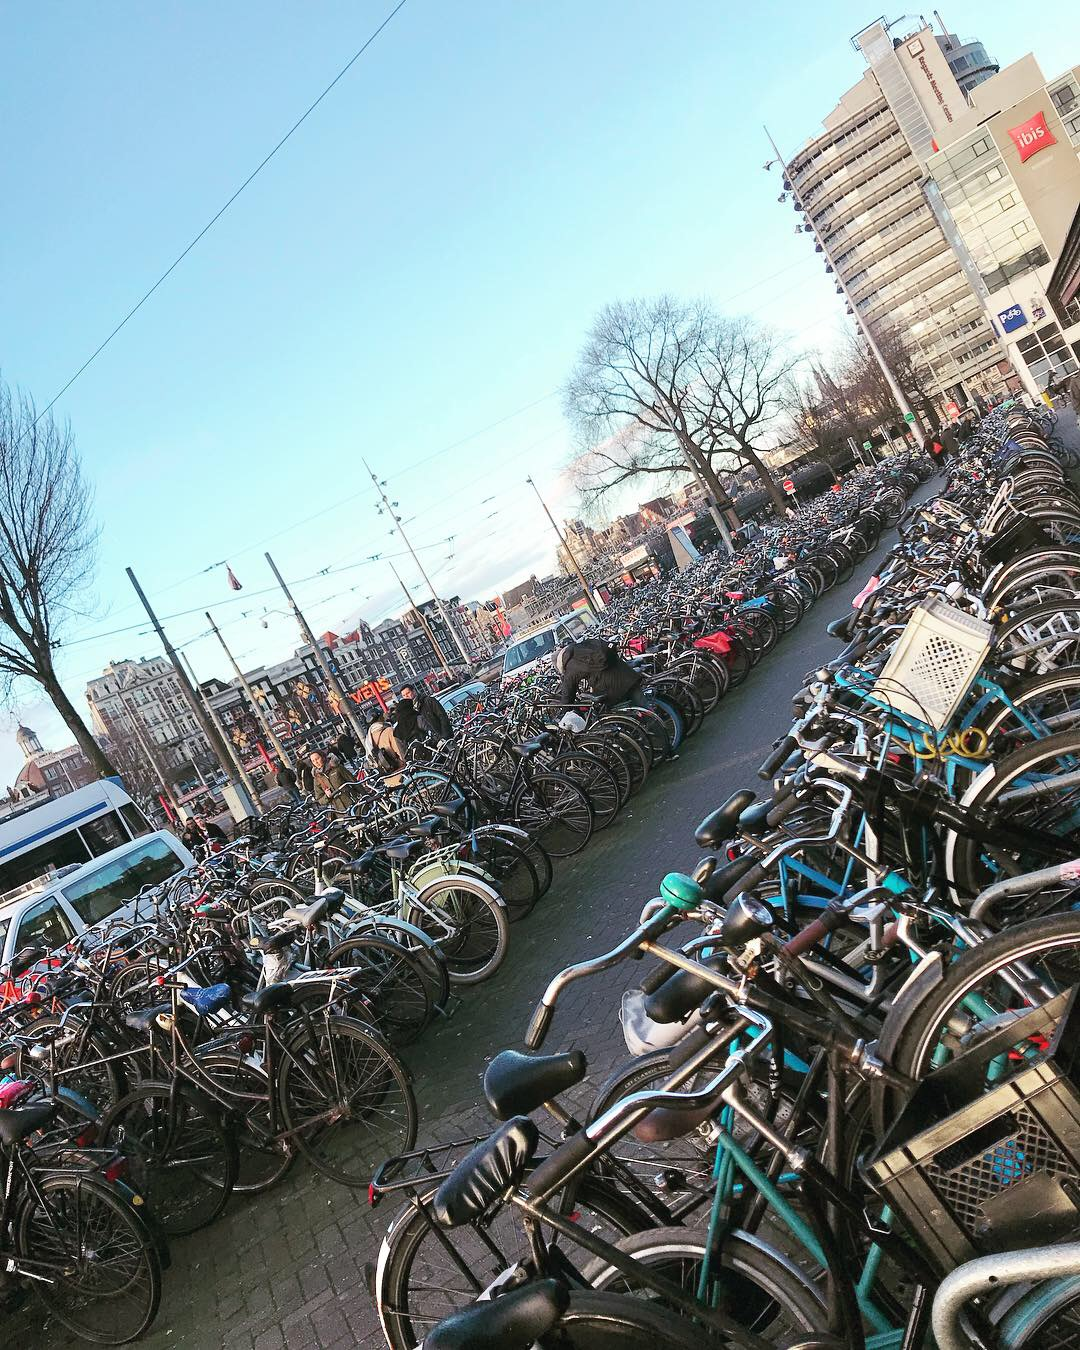 Only few bicycles…!